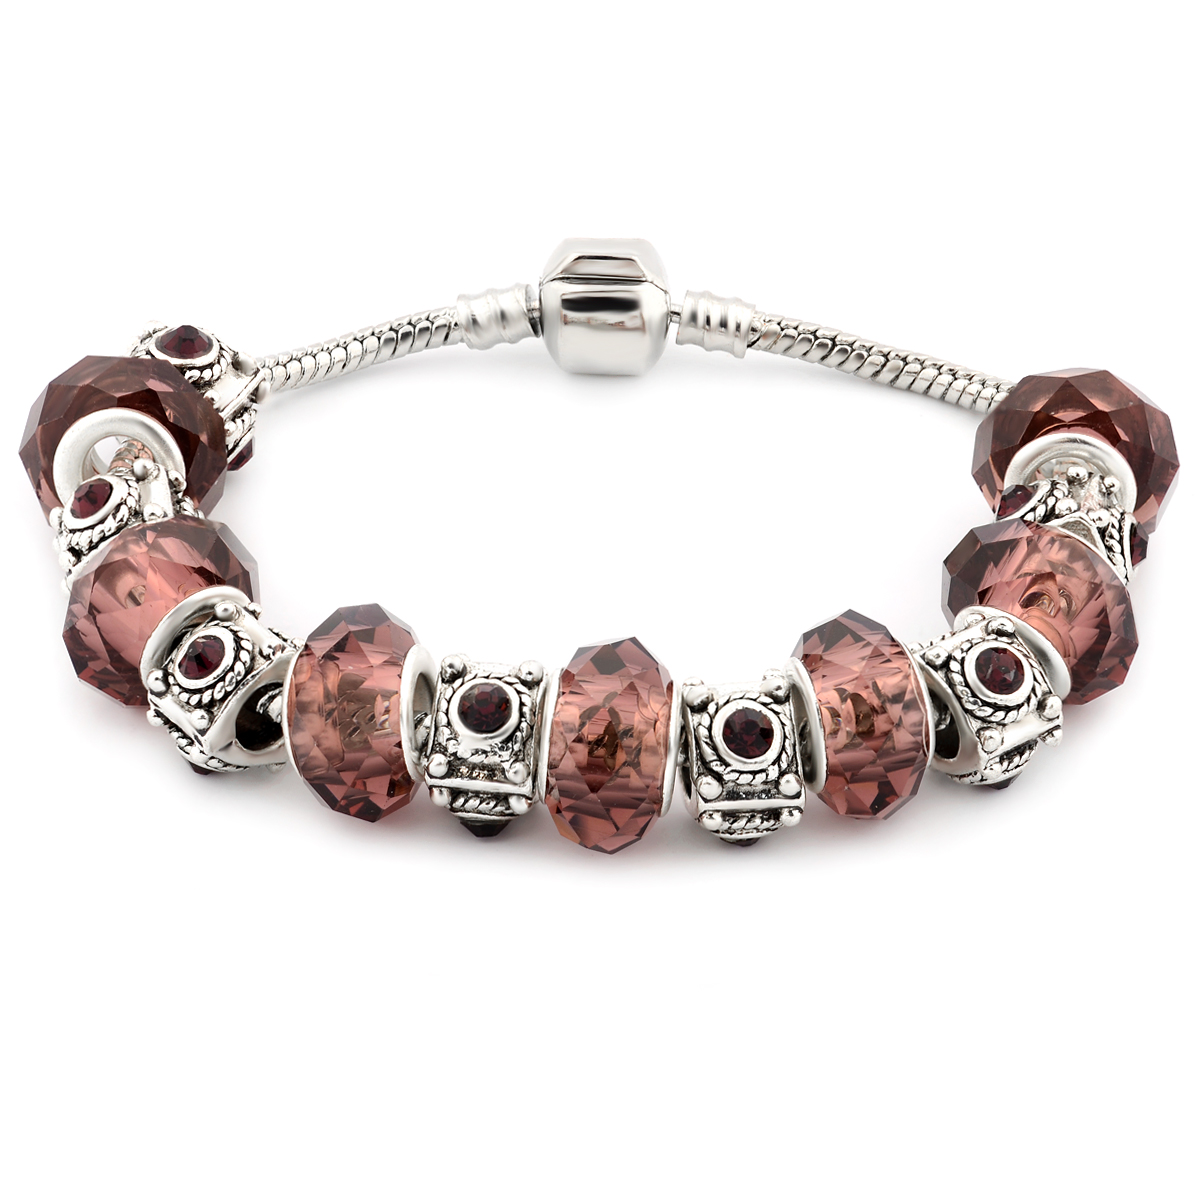 Murano Glass Bead Birthstone Bracelets - 12 Colors